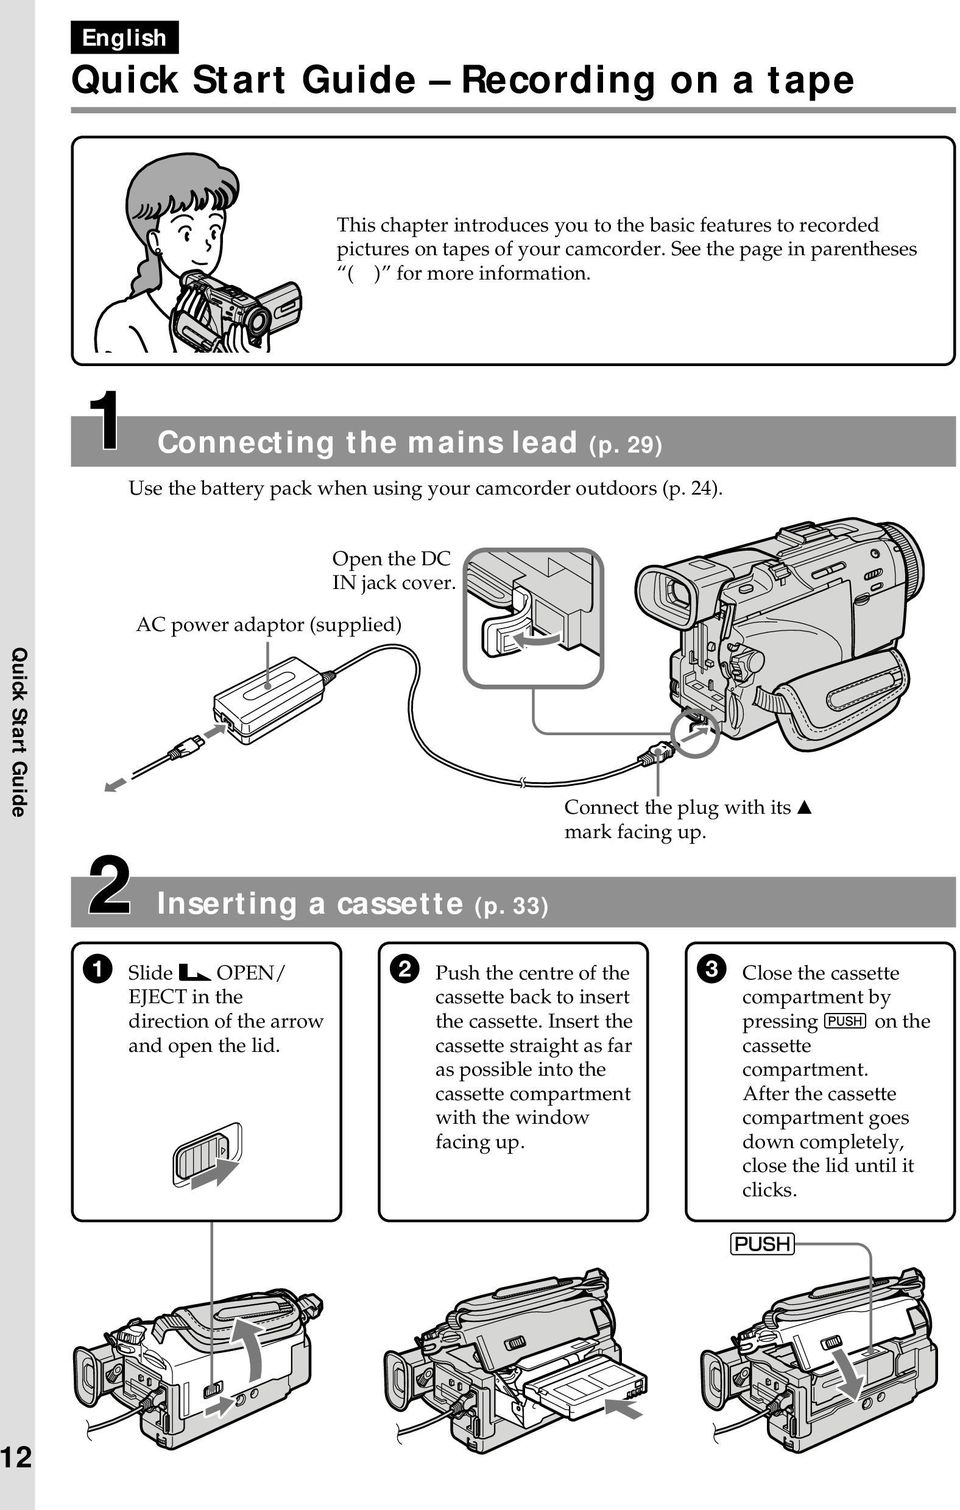 AC power adaptor (supplied) Quick Start Guide Connect the plug with its v mark facing up. Inserting a cassette (p. 33) 1 Slide OPEN/ EJECT in the direction of the arrow and open the lid.